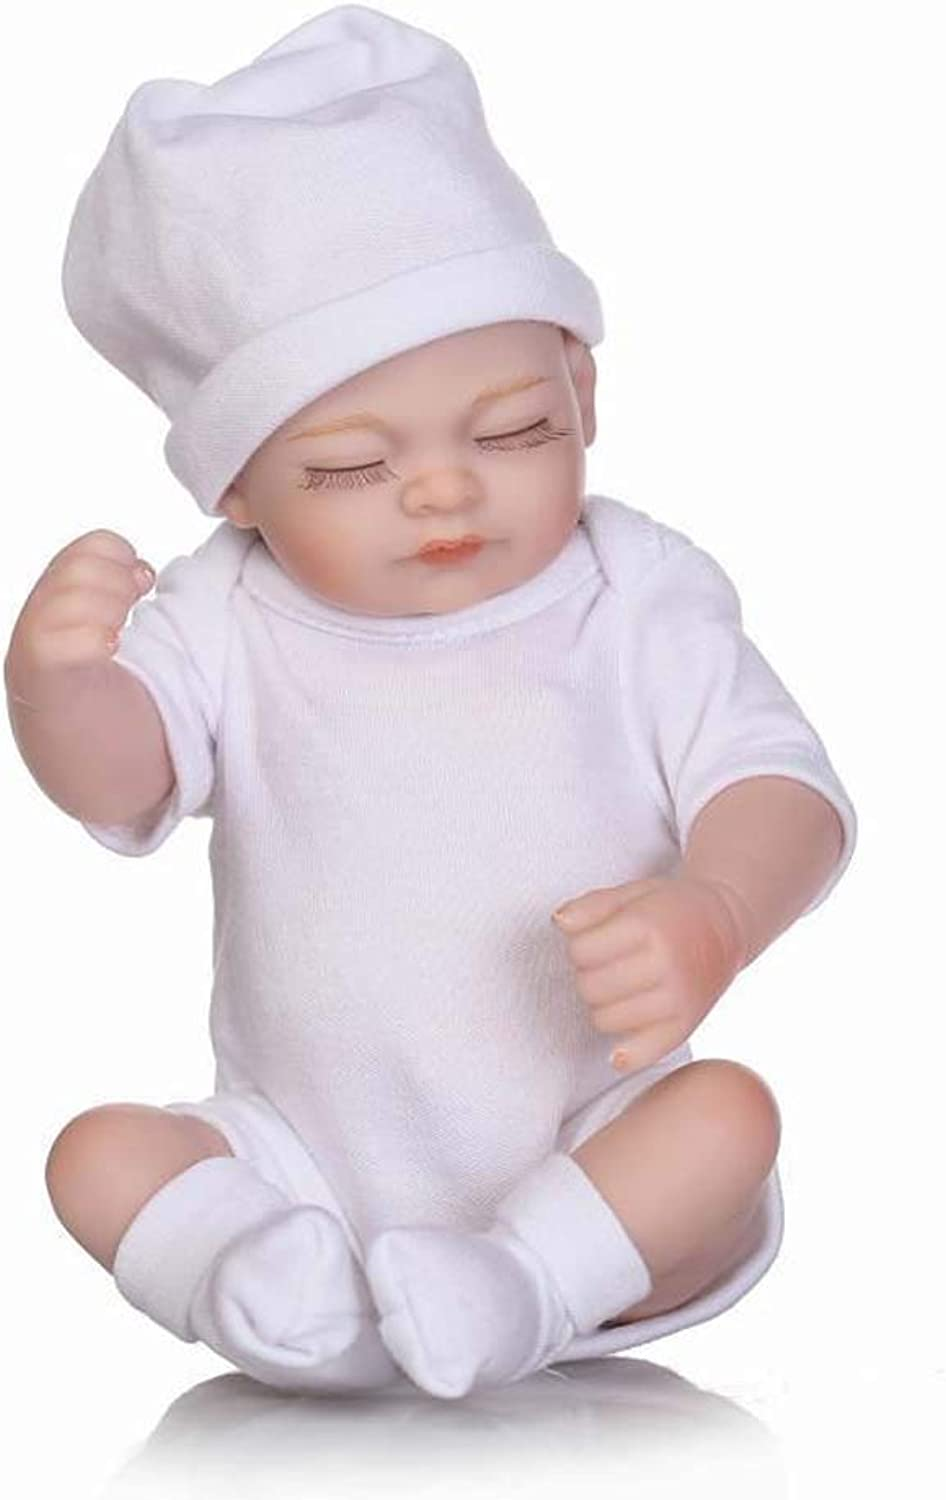 Reborn Baby Dolls Sleeping Baby Look Real White Outfit 10 Inches (26Cm)